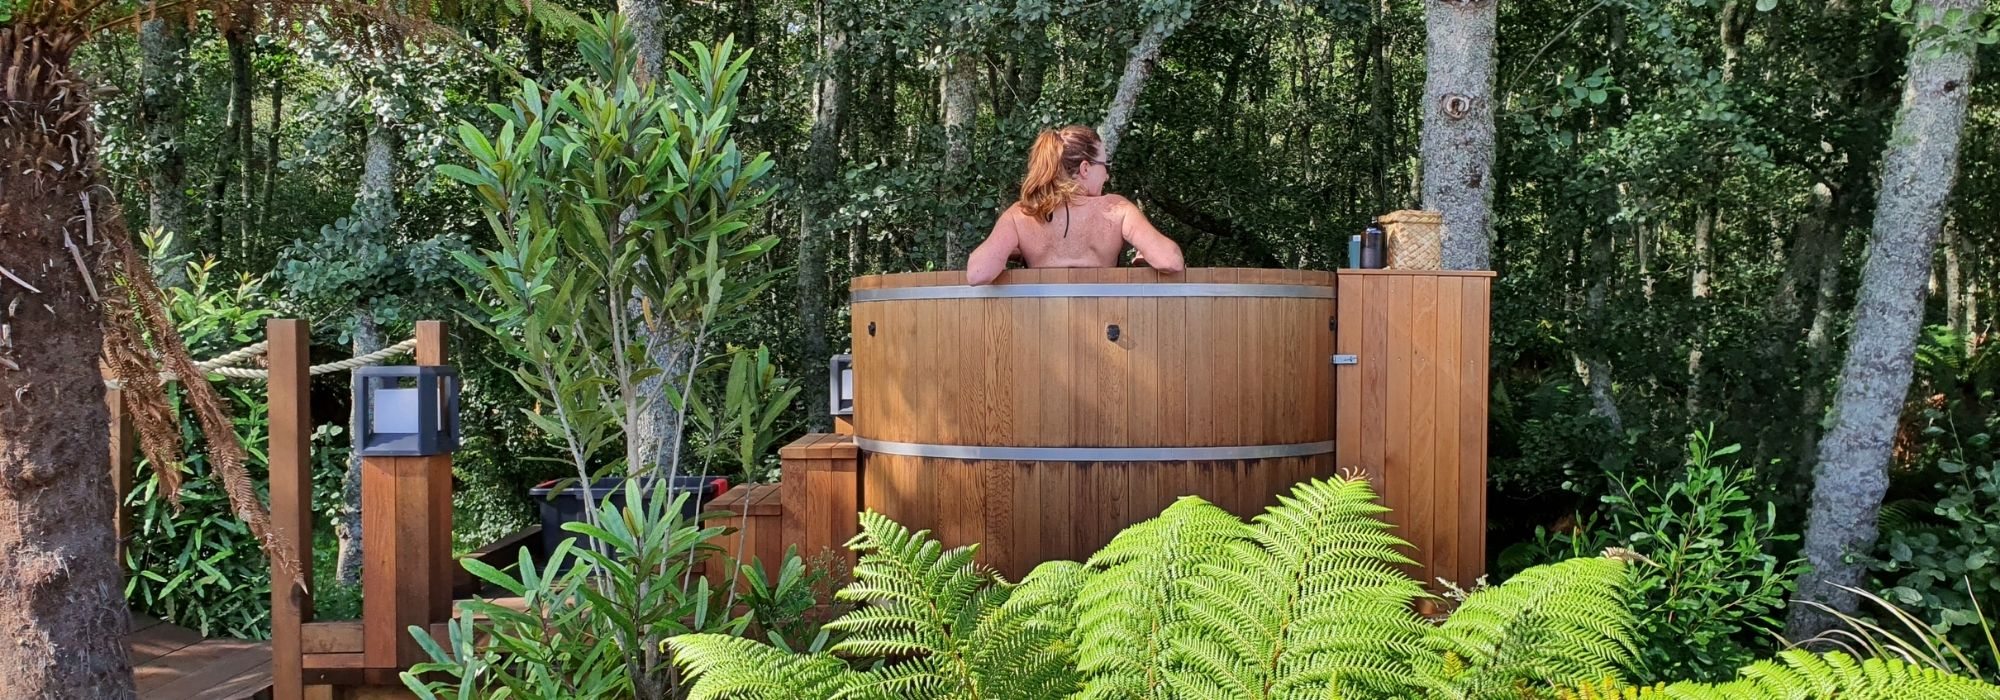 Get yourself into hot water in Rotorua